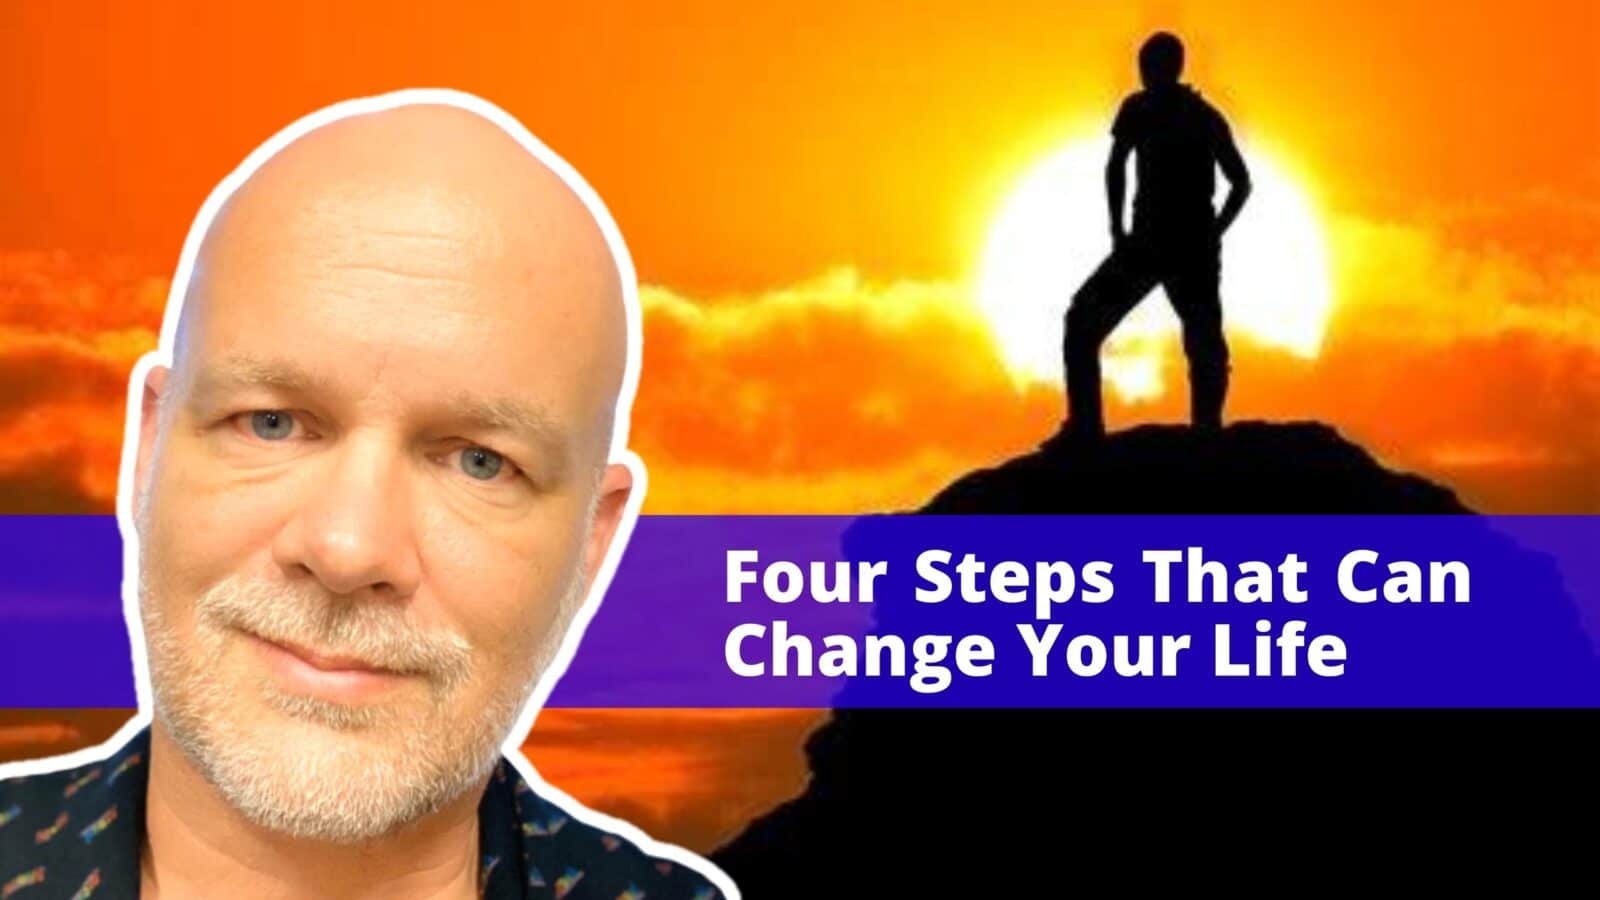 Curtis Danskin Four Steps That Can Chang Your Life lgbtq entrepreneur gay professional business owner OutBuro communit member